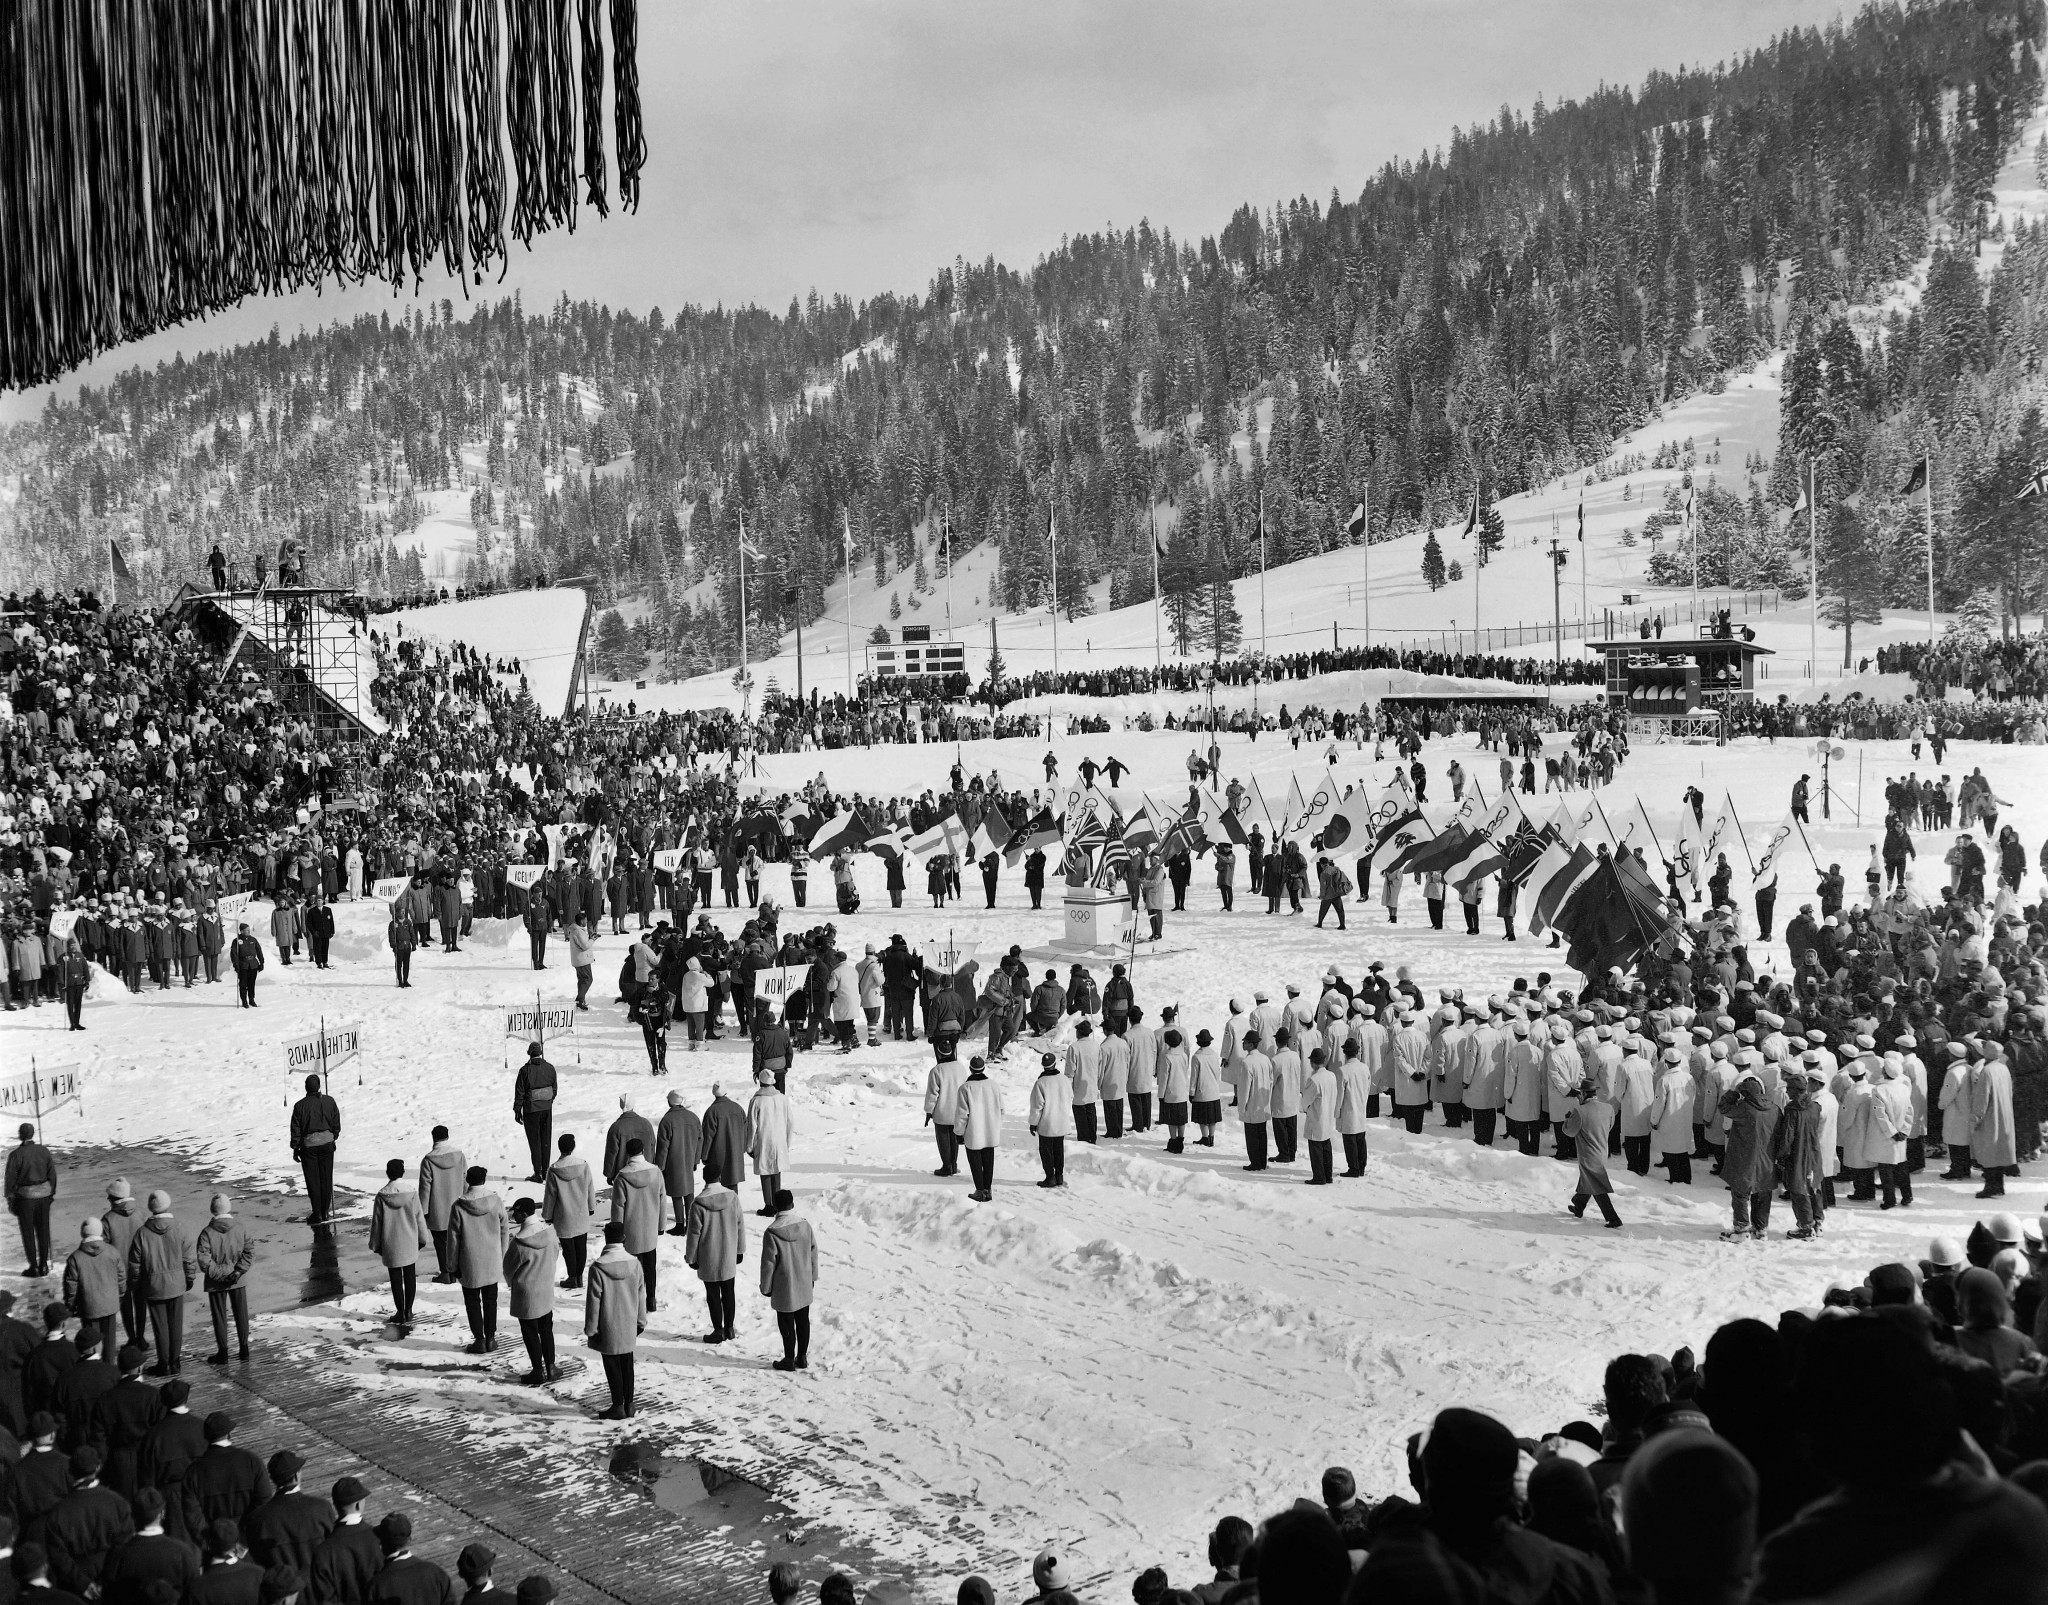 The Opening Ceremony in 1960 at Squaw Valley ©AFP via Getty Images